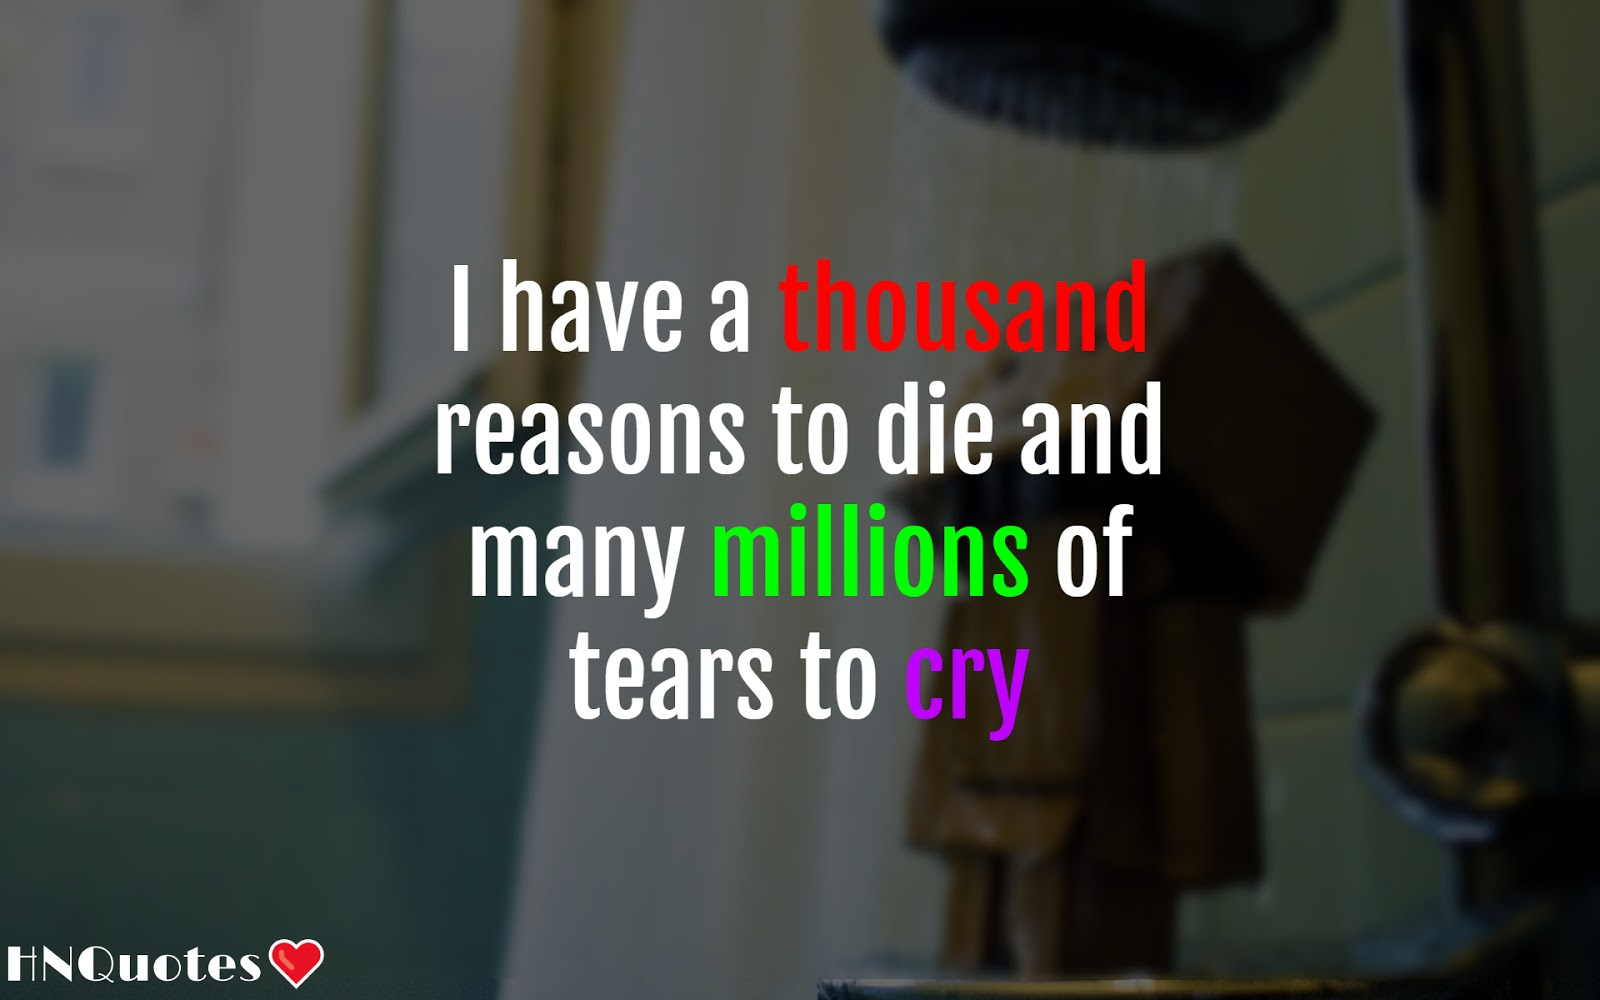 Sad-&-Emotional-Quotes-on-Life-69-Best-Emotional-Quotes[HNQuotes]